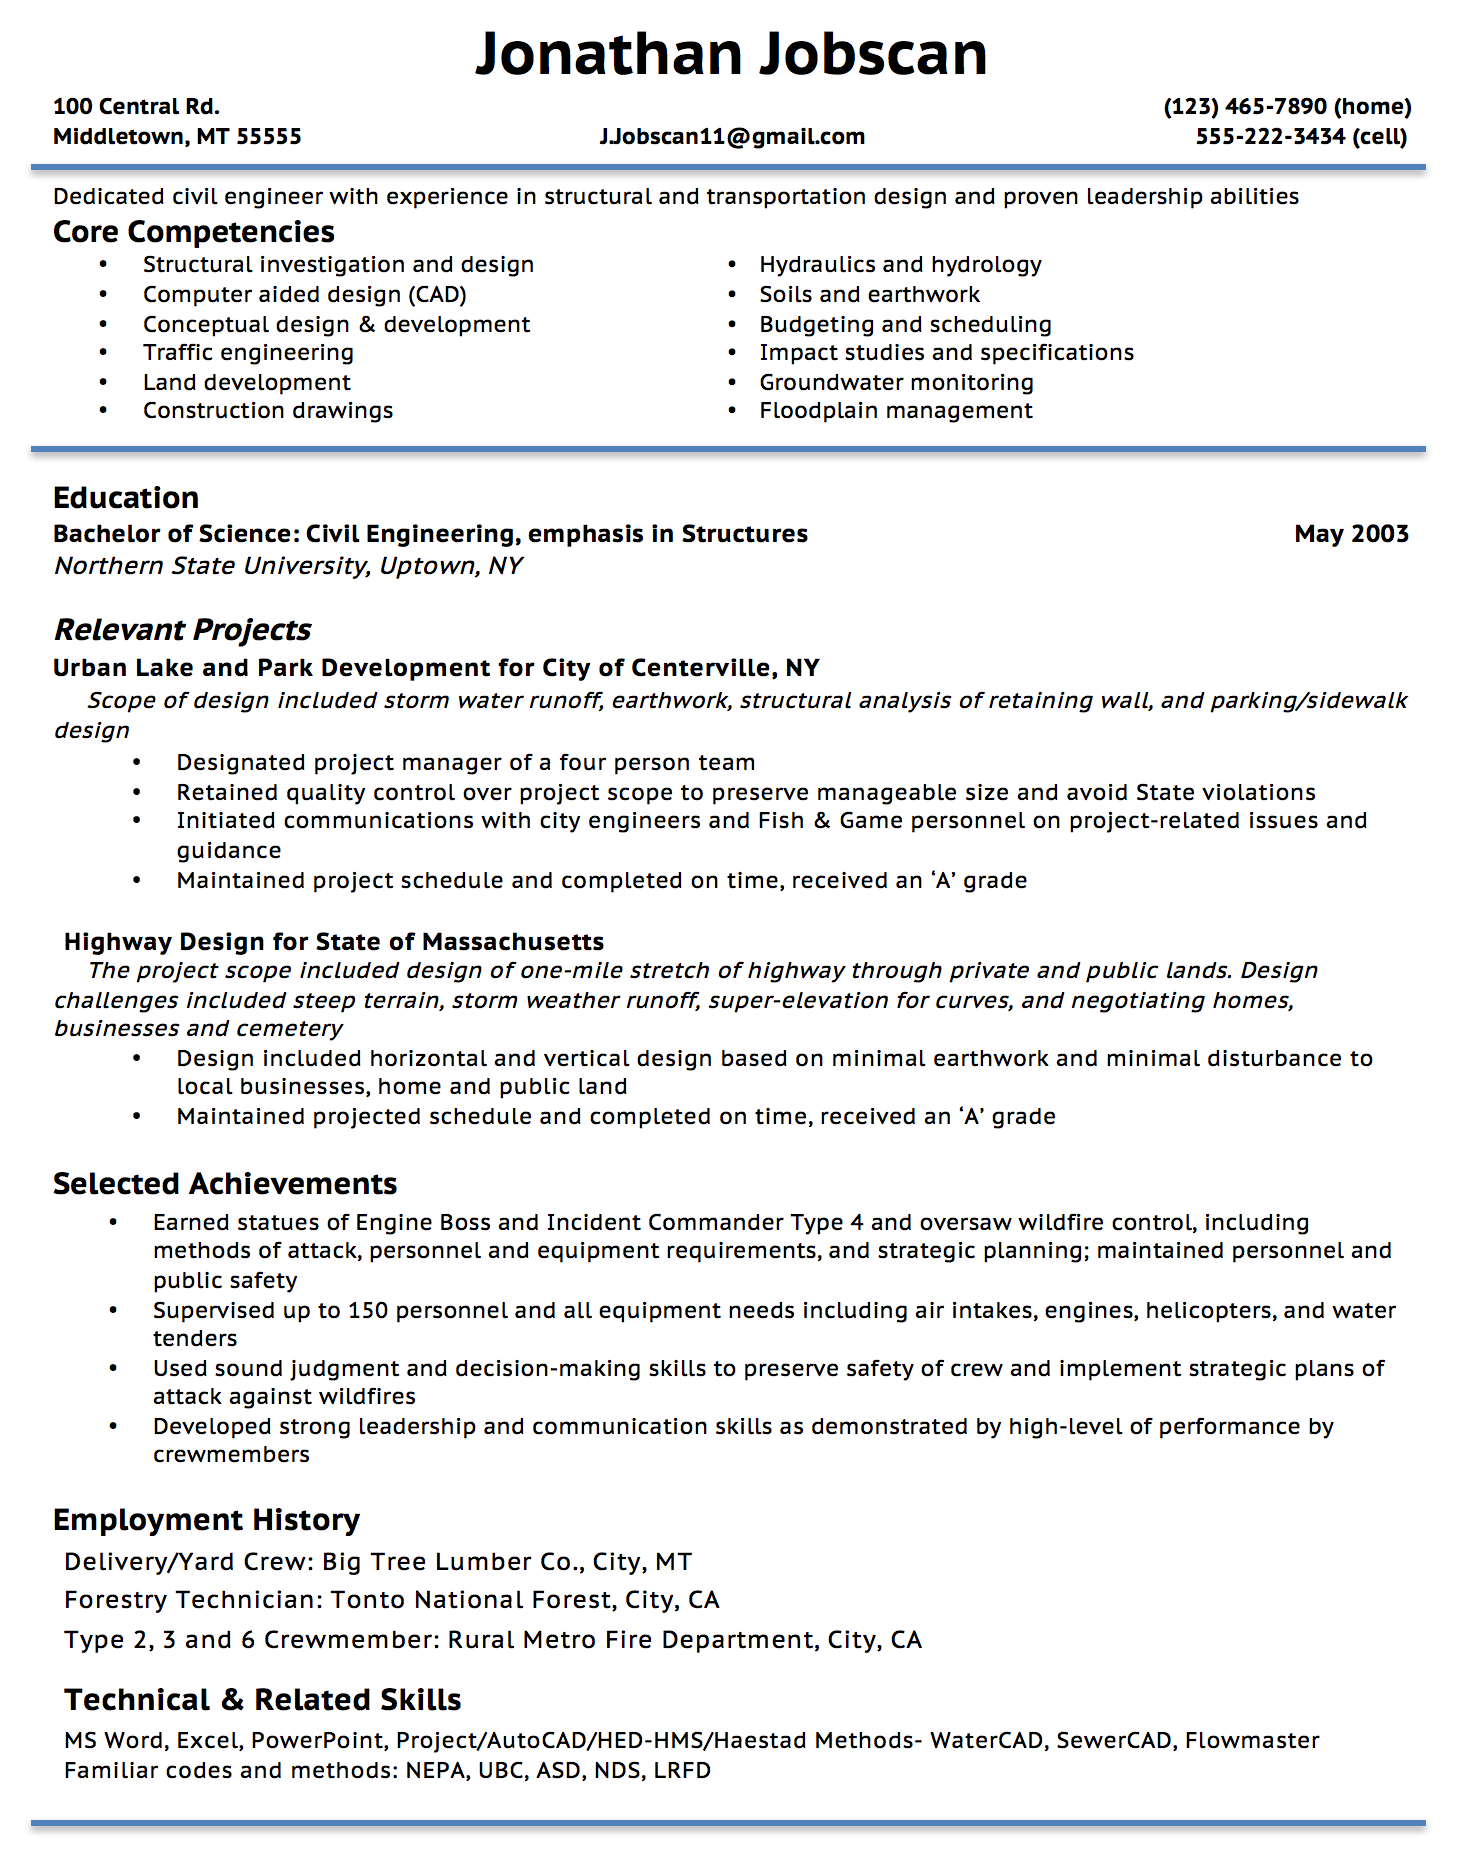 Opposenewapstandardsus  Mesmerizing Resume Writing Guide  Jobscan With Goodlooking Example Of A Functional Resume Format With Adorable Accounting Objective Resume Also History Teacher Resume In Addition Create Resume Templates And Babysitting Resume Template As Well As Example Of College Student Resume Additionally Send Resume To Jobs From Jobscanco With Opposenewapstandardsus  Goodlooking Resume Writing Guide  Jobscan With Adorable Example Of A Functional Resume Format And Mesmerizing Accounting Objective Resume Also History Teacher Resume In Addition Create Resume Templates From Jobscanco